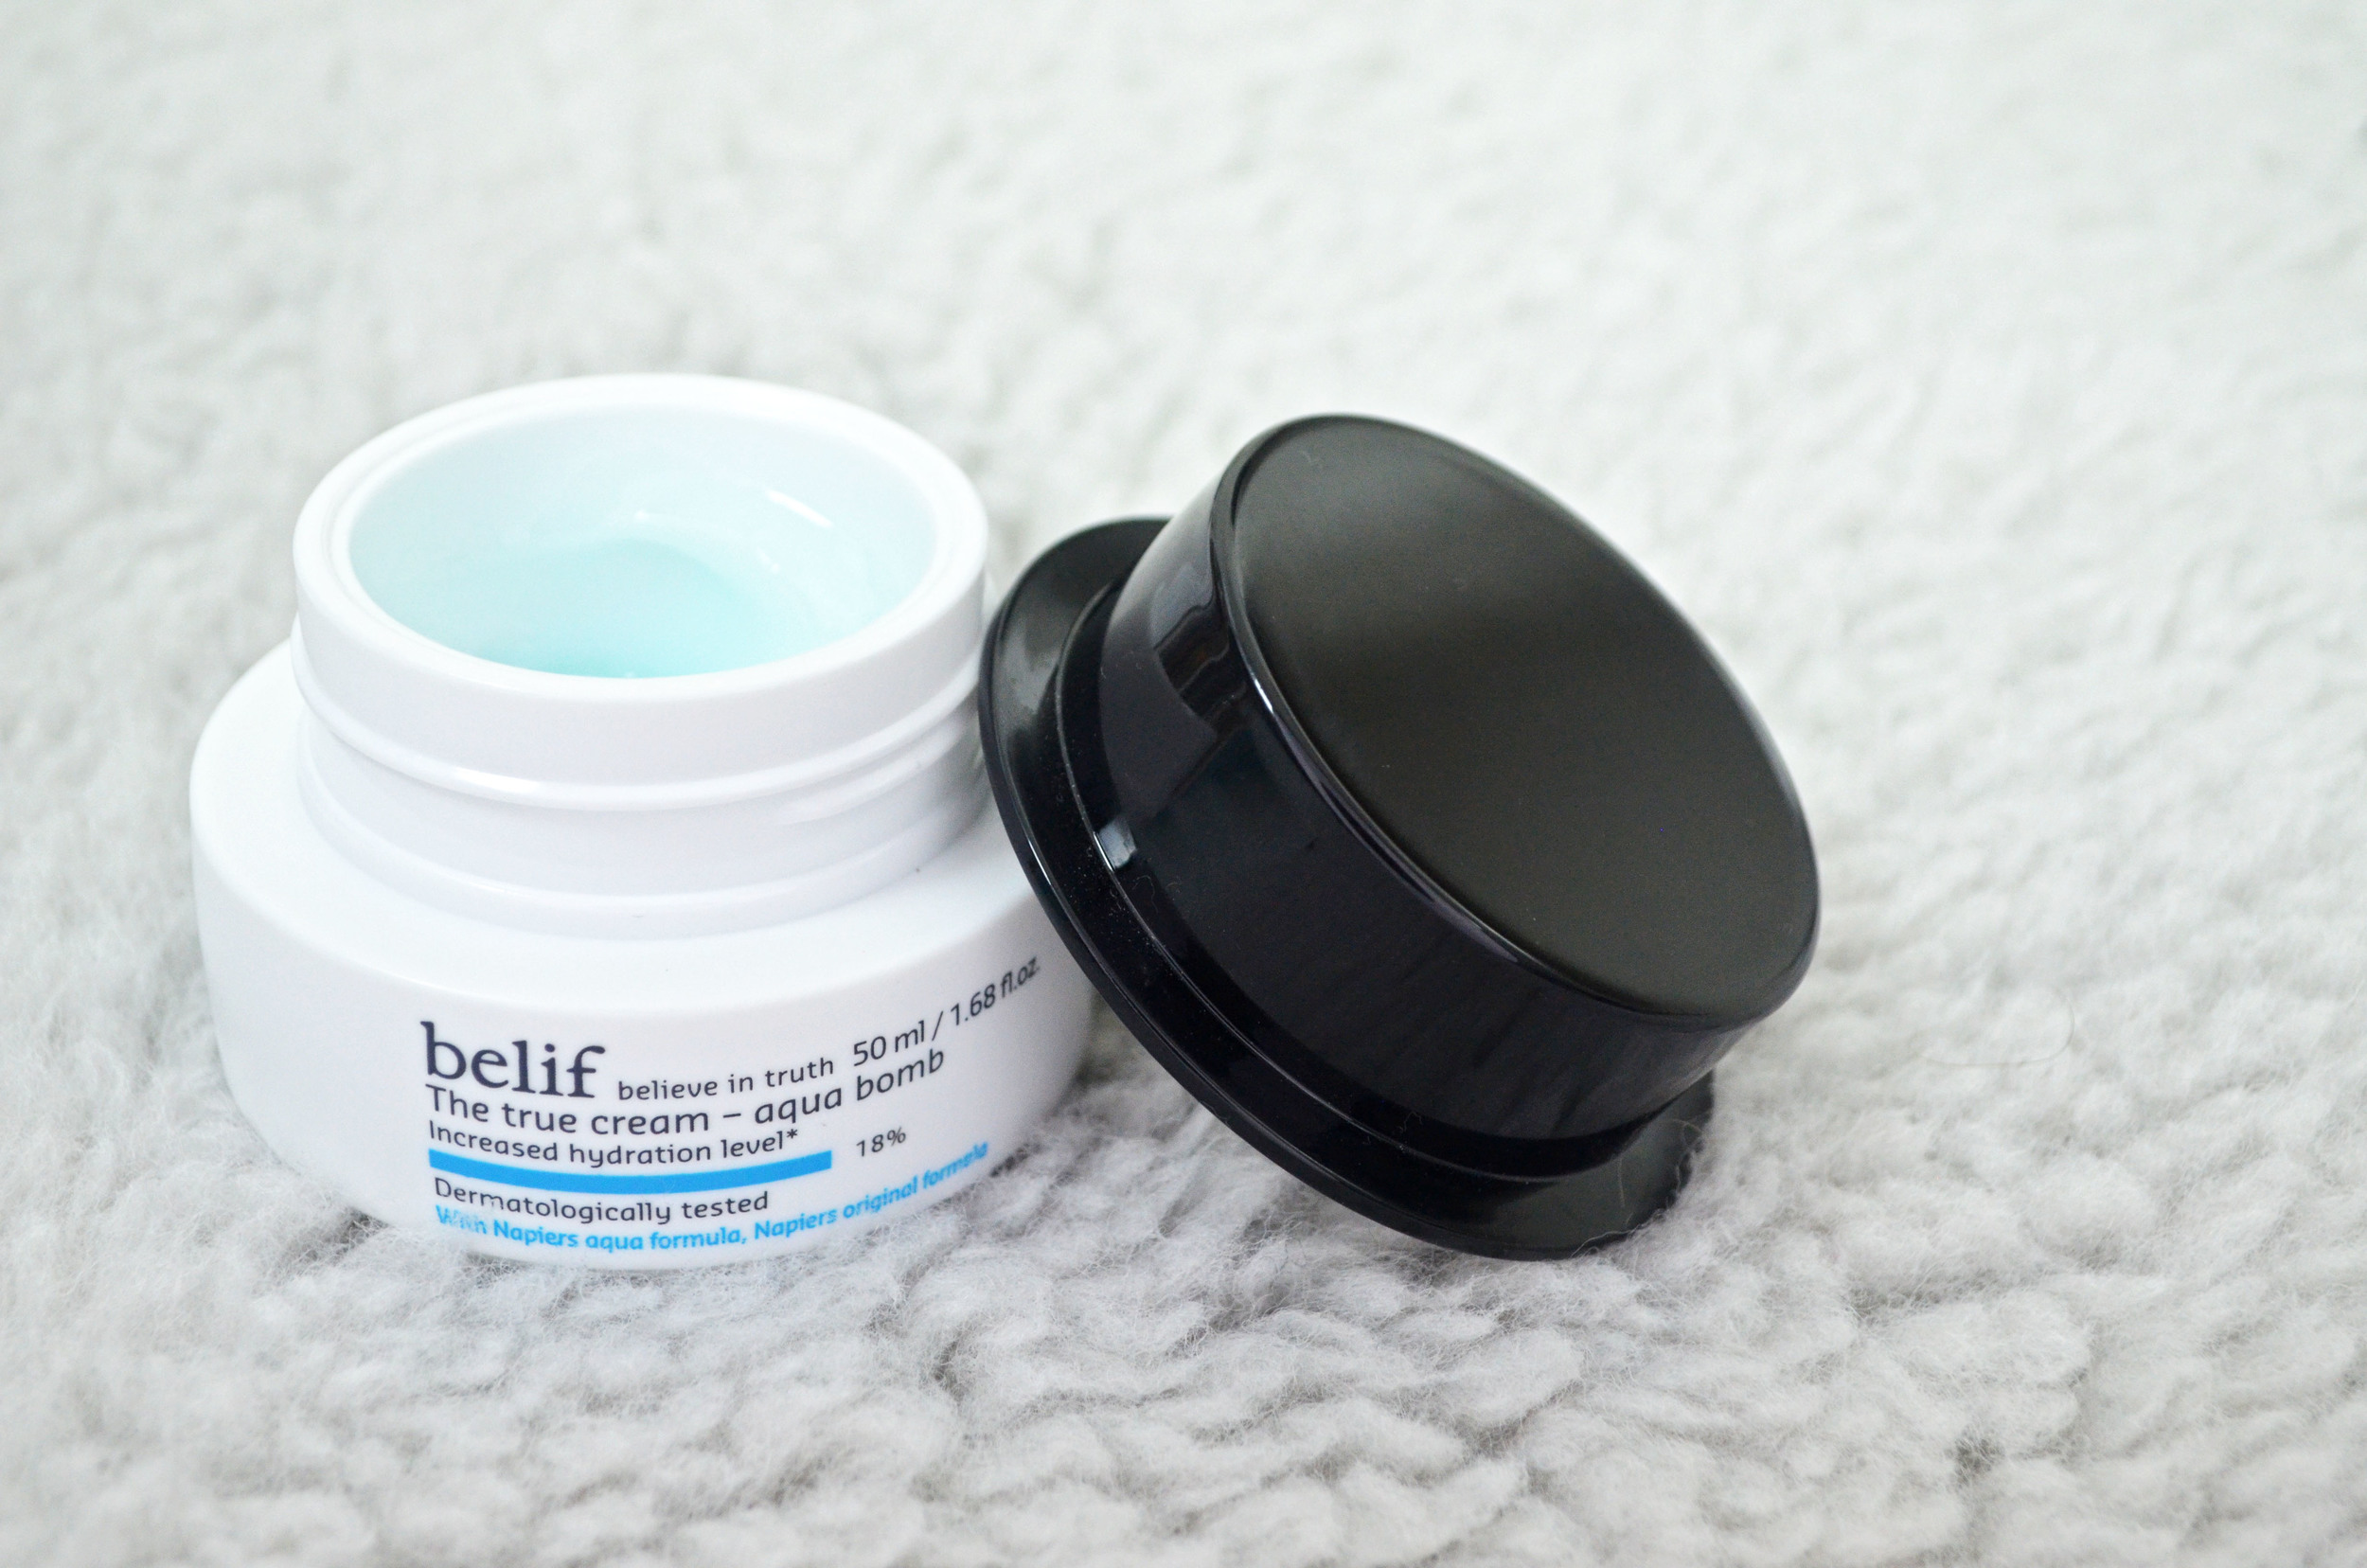 Belif The True Cream Aqua Bomb review